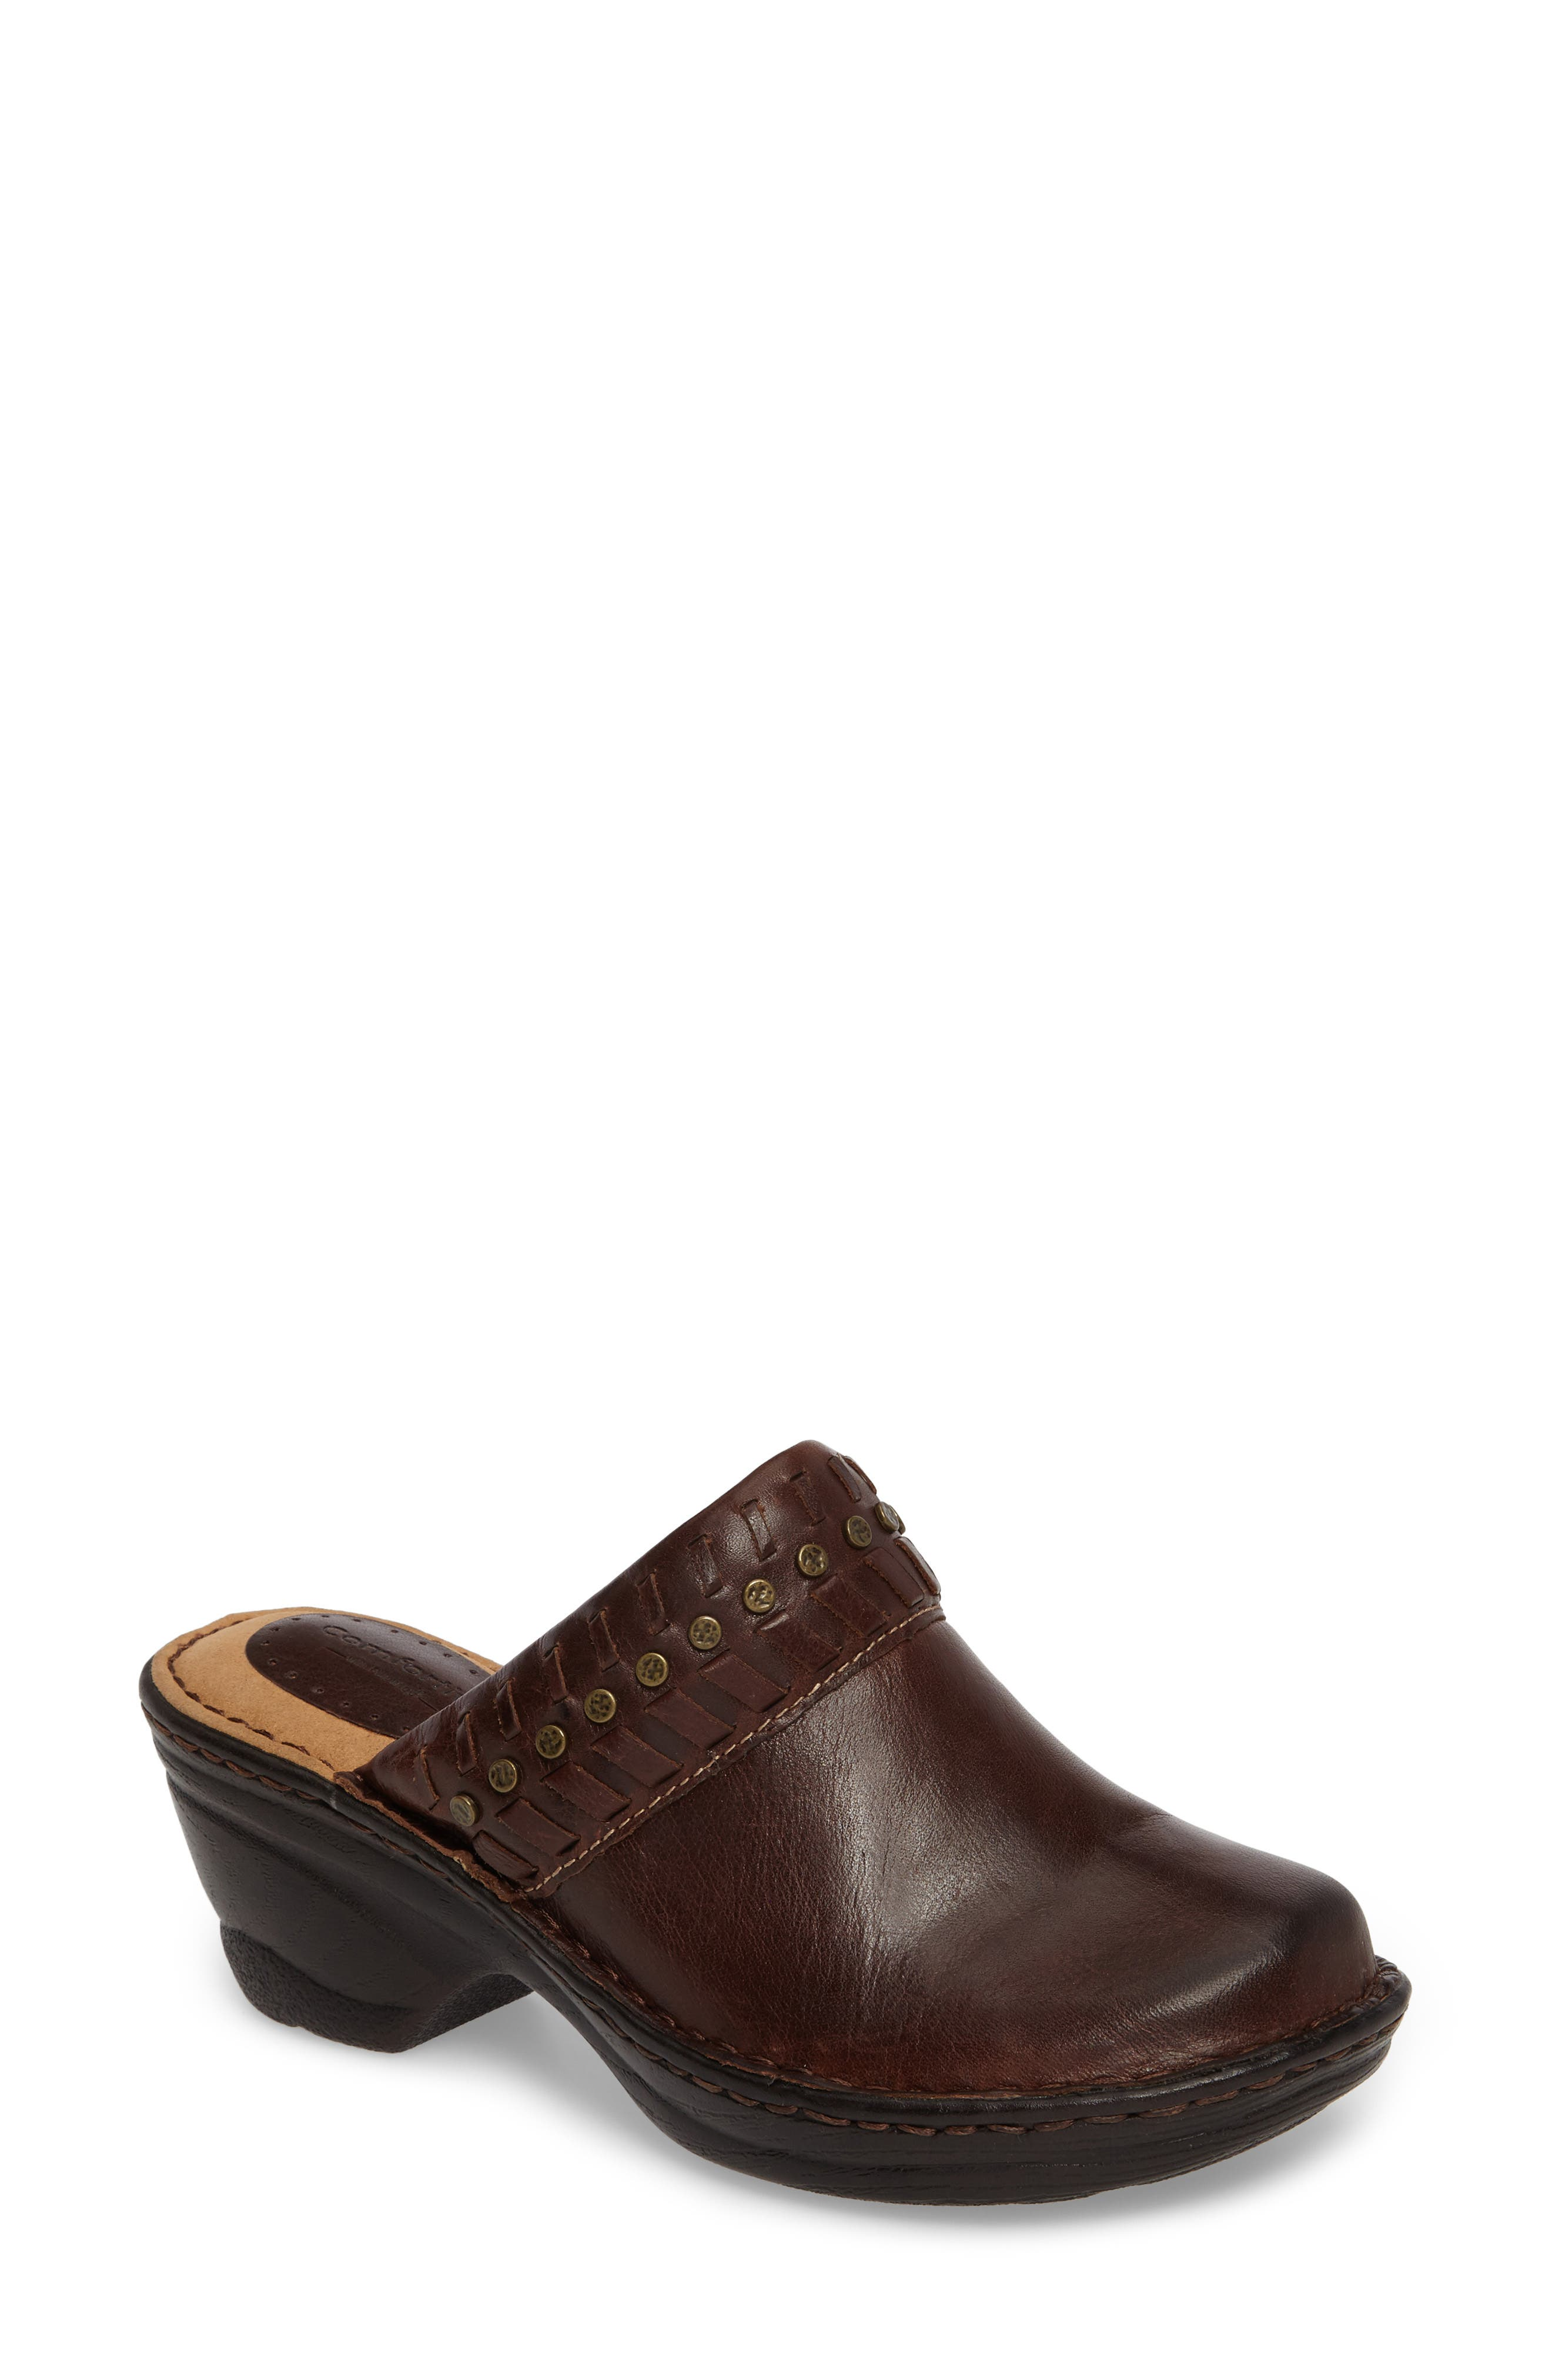 Lorain Clog,                             Main thumbnail 1, color,                             Bridle Brown Leather